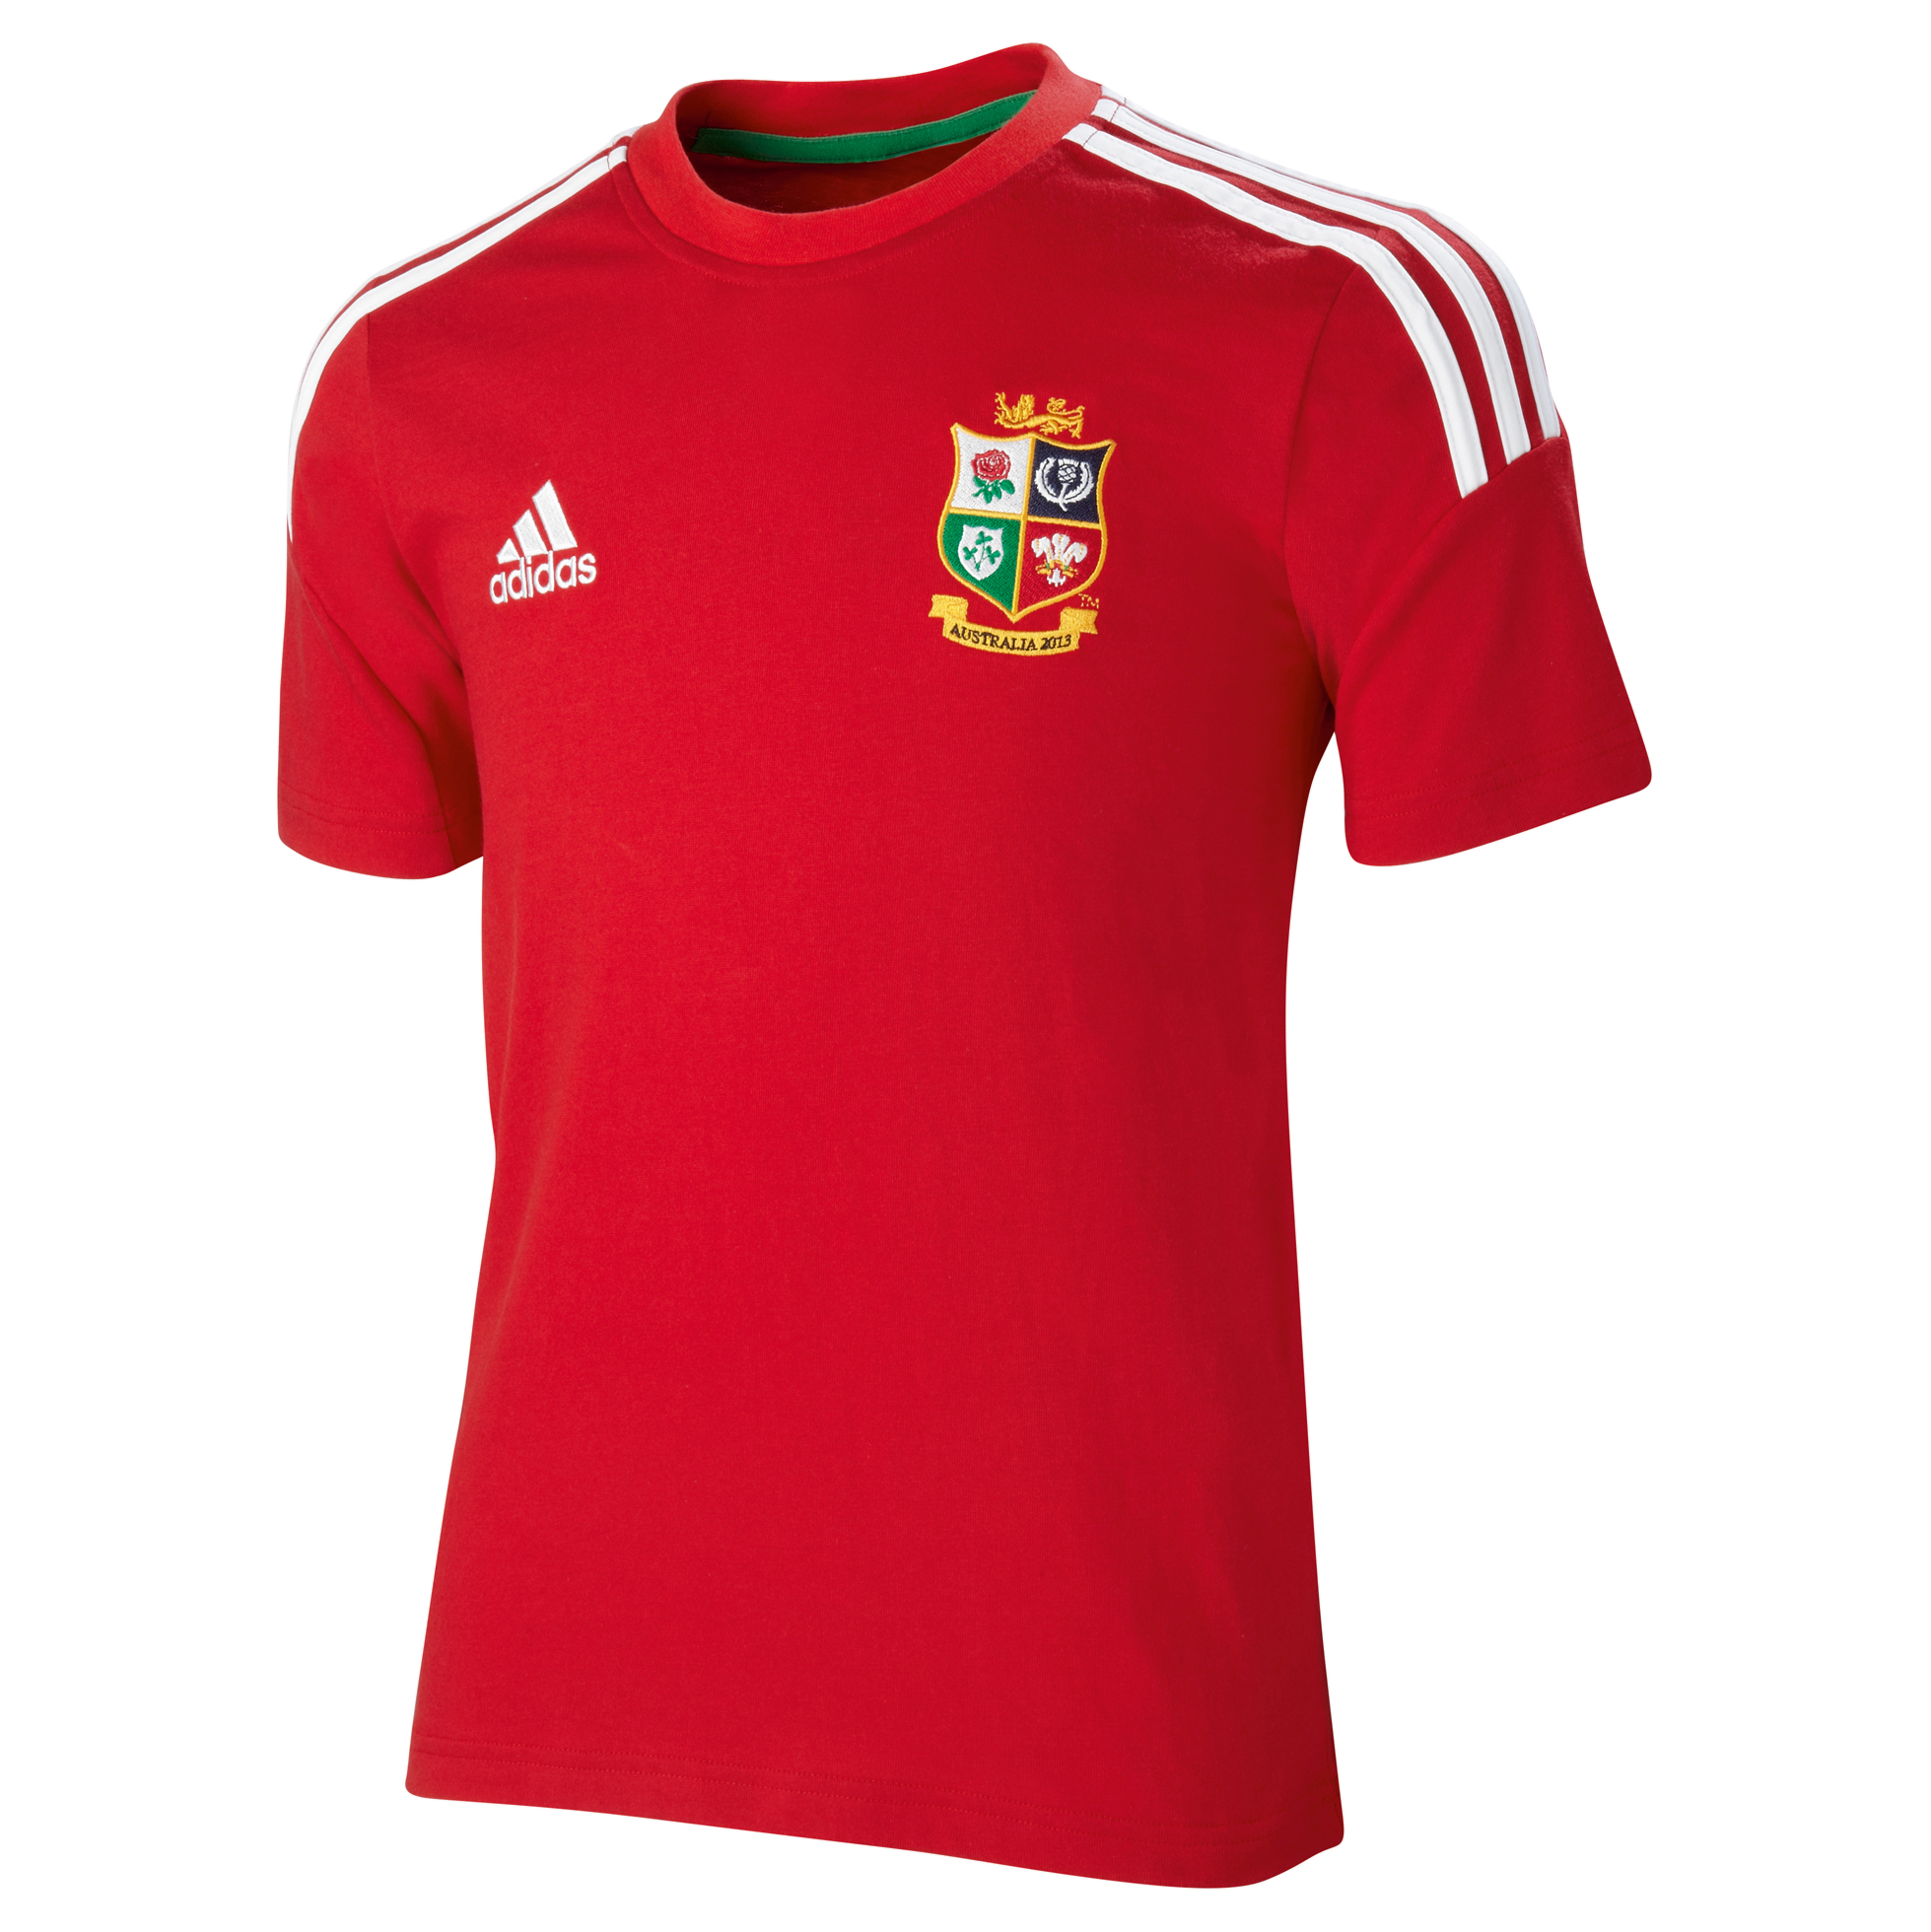 adidas British and Irish Lions T-Shirt - University Red/White - Kids